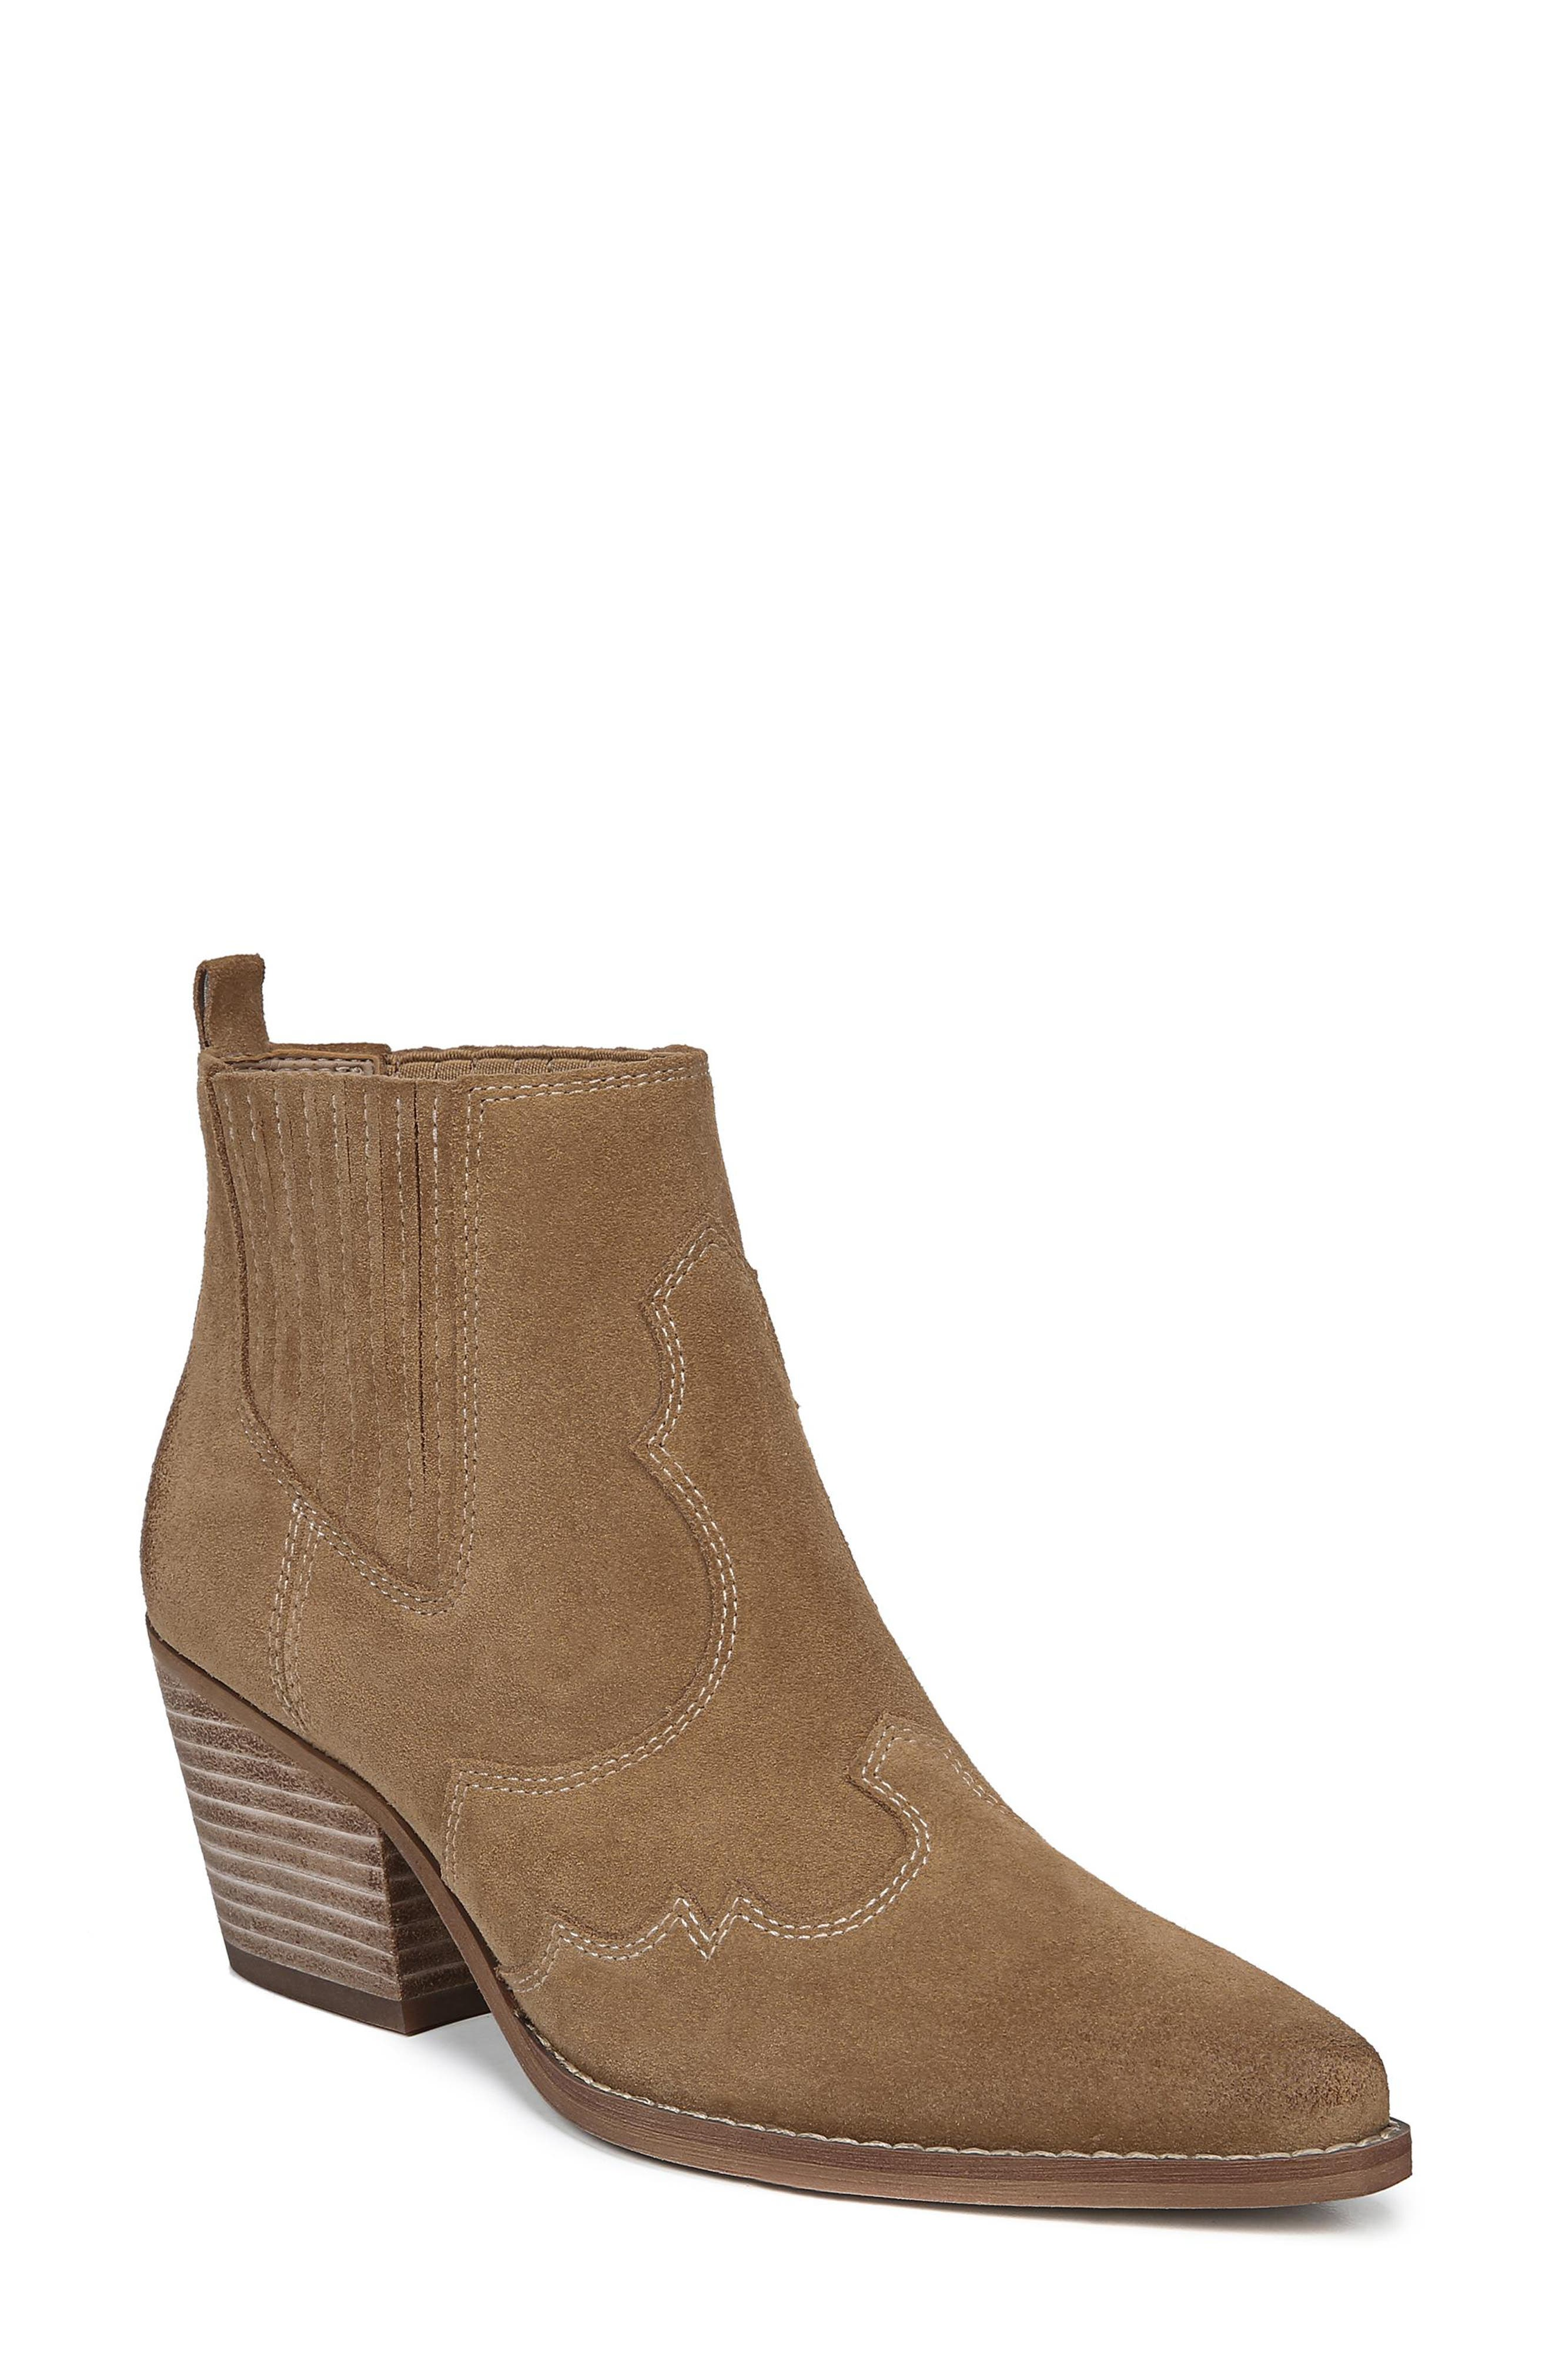 Sam Edelman Winona Genuine Calf Hair Bootie, Brown